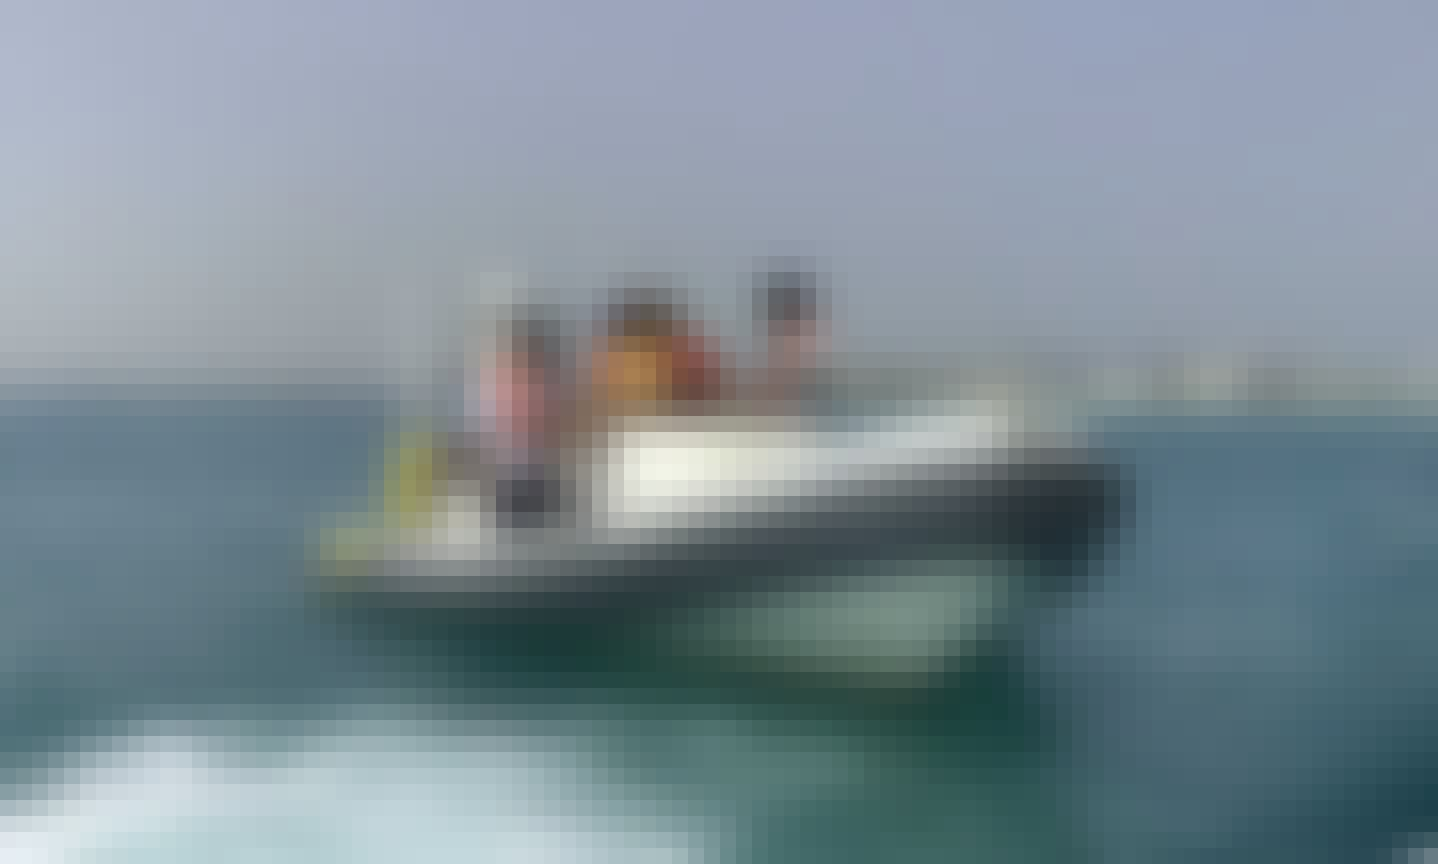 26' Rigid Inflatable Boat with 225 hp Mercury Engine in Muharraq Governorate, Bahrain